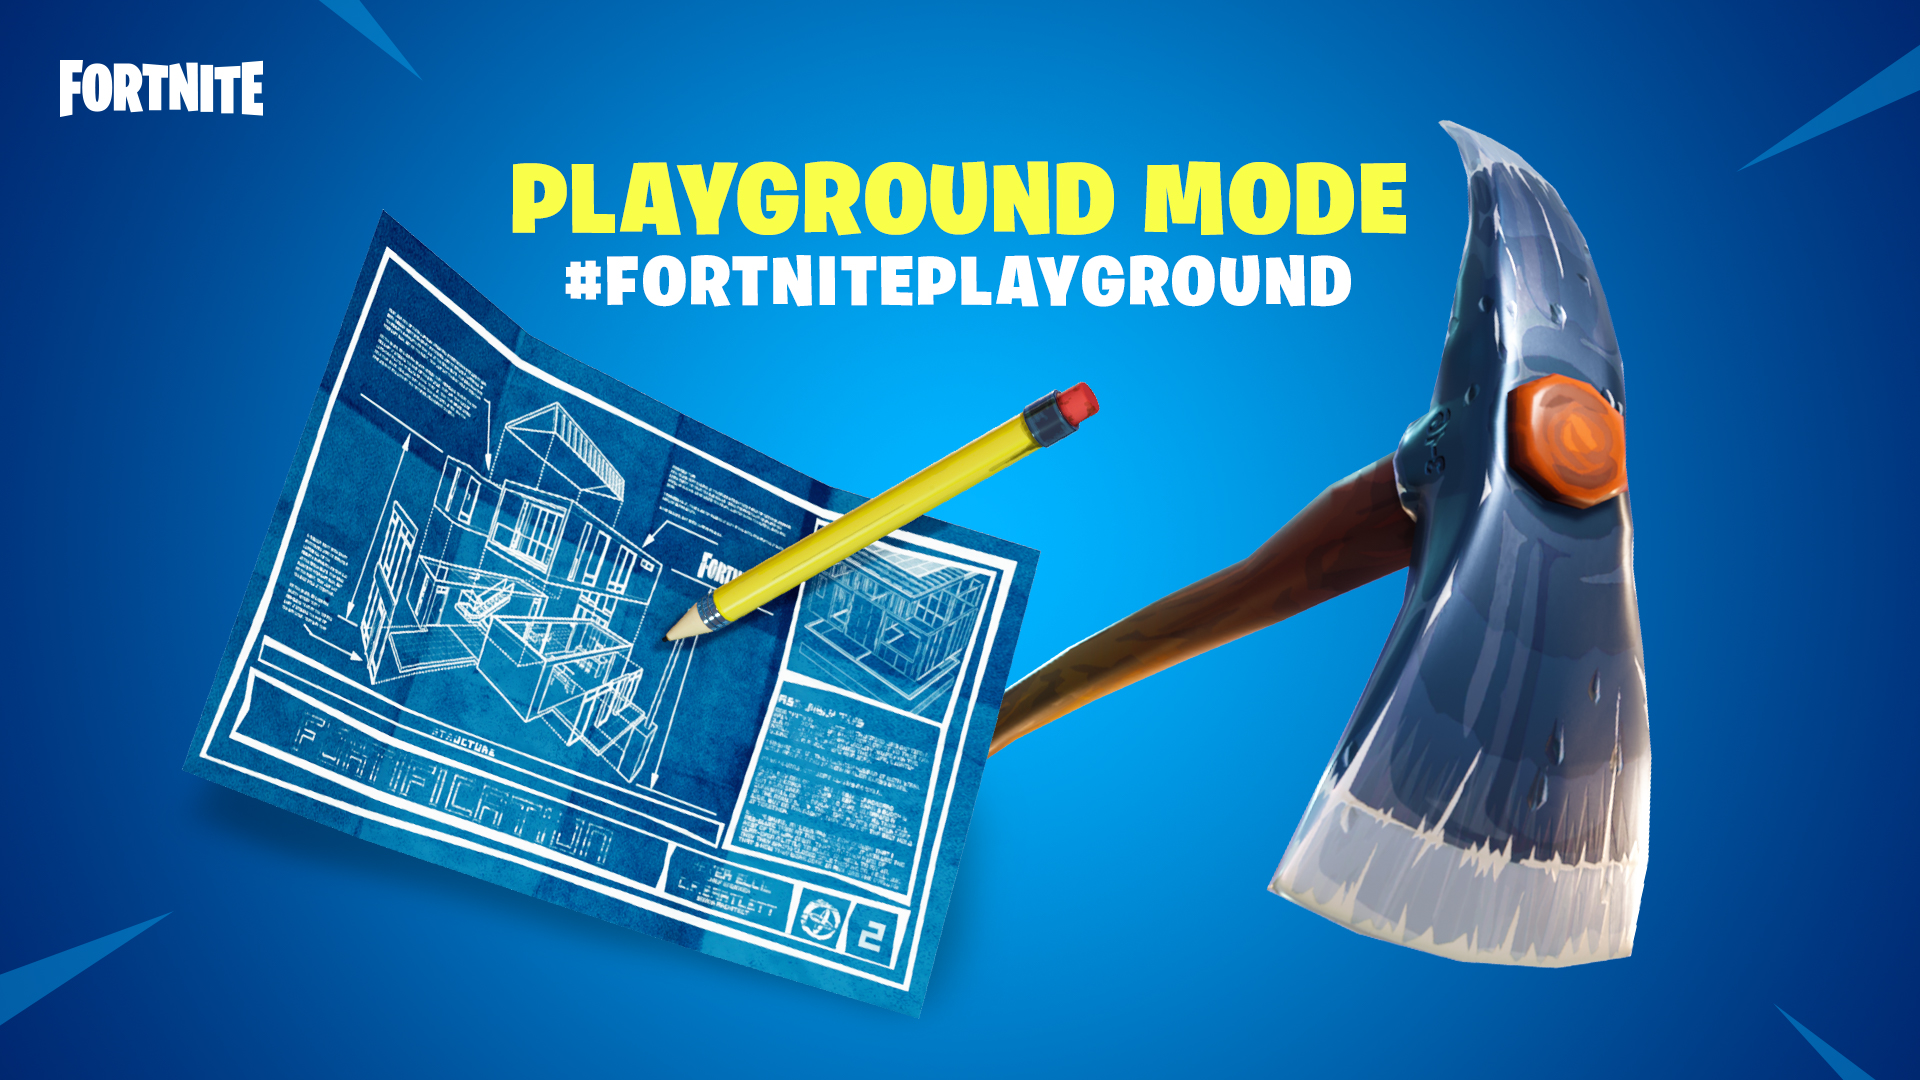 How to Change Servers in Fortnite to Get Playground Mode